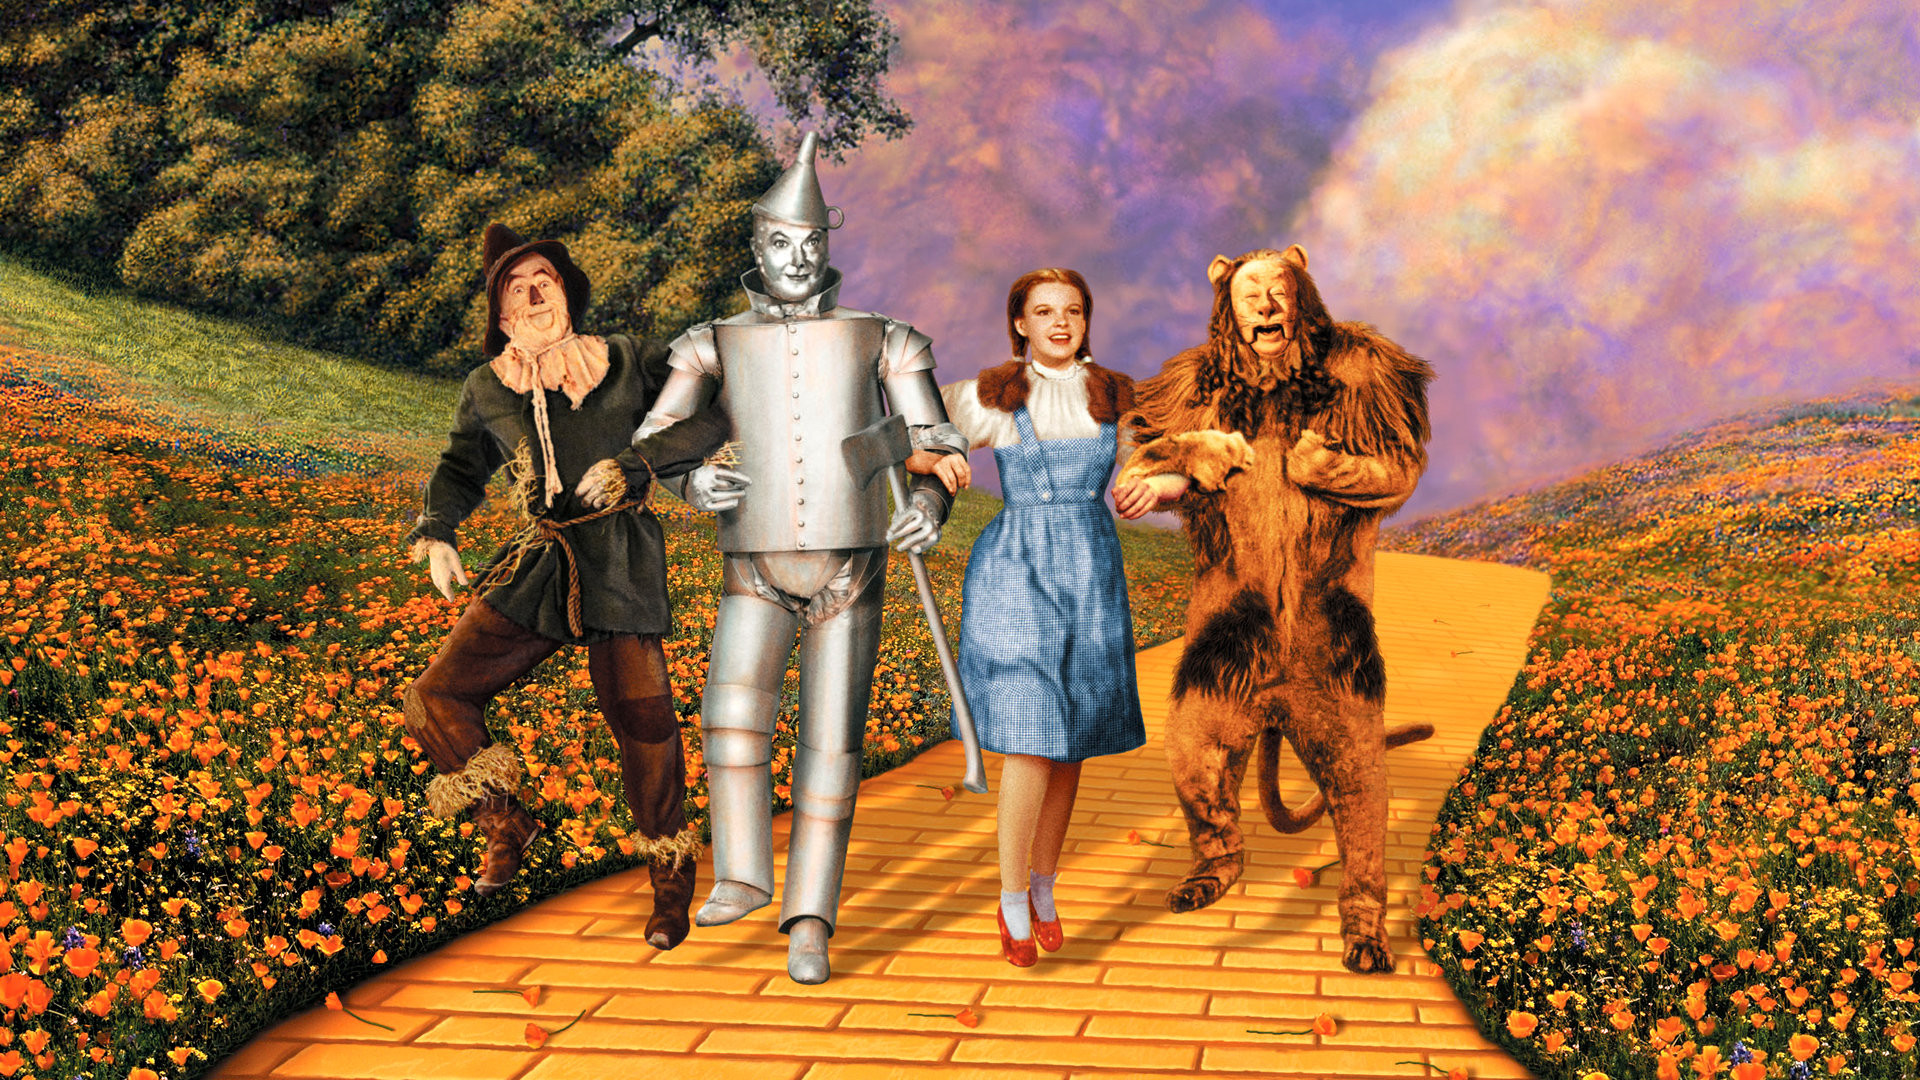 The film cast of The Wizard of Oz